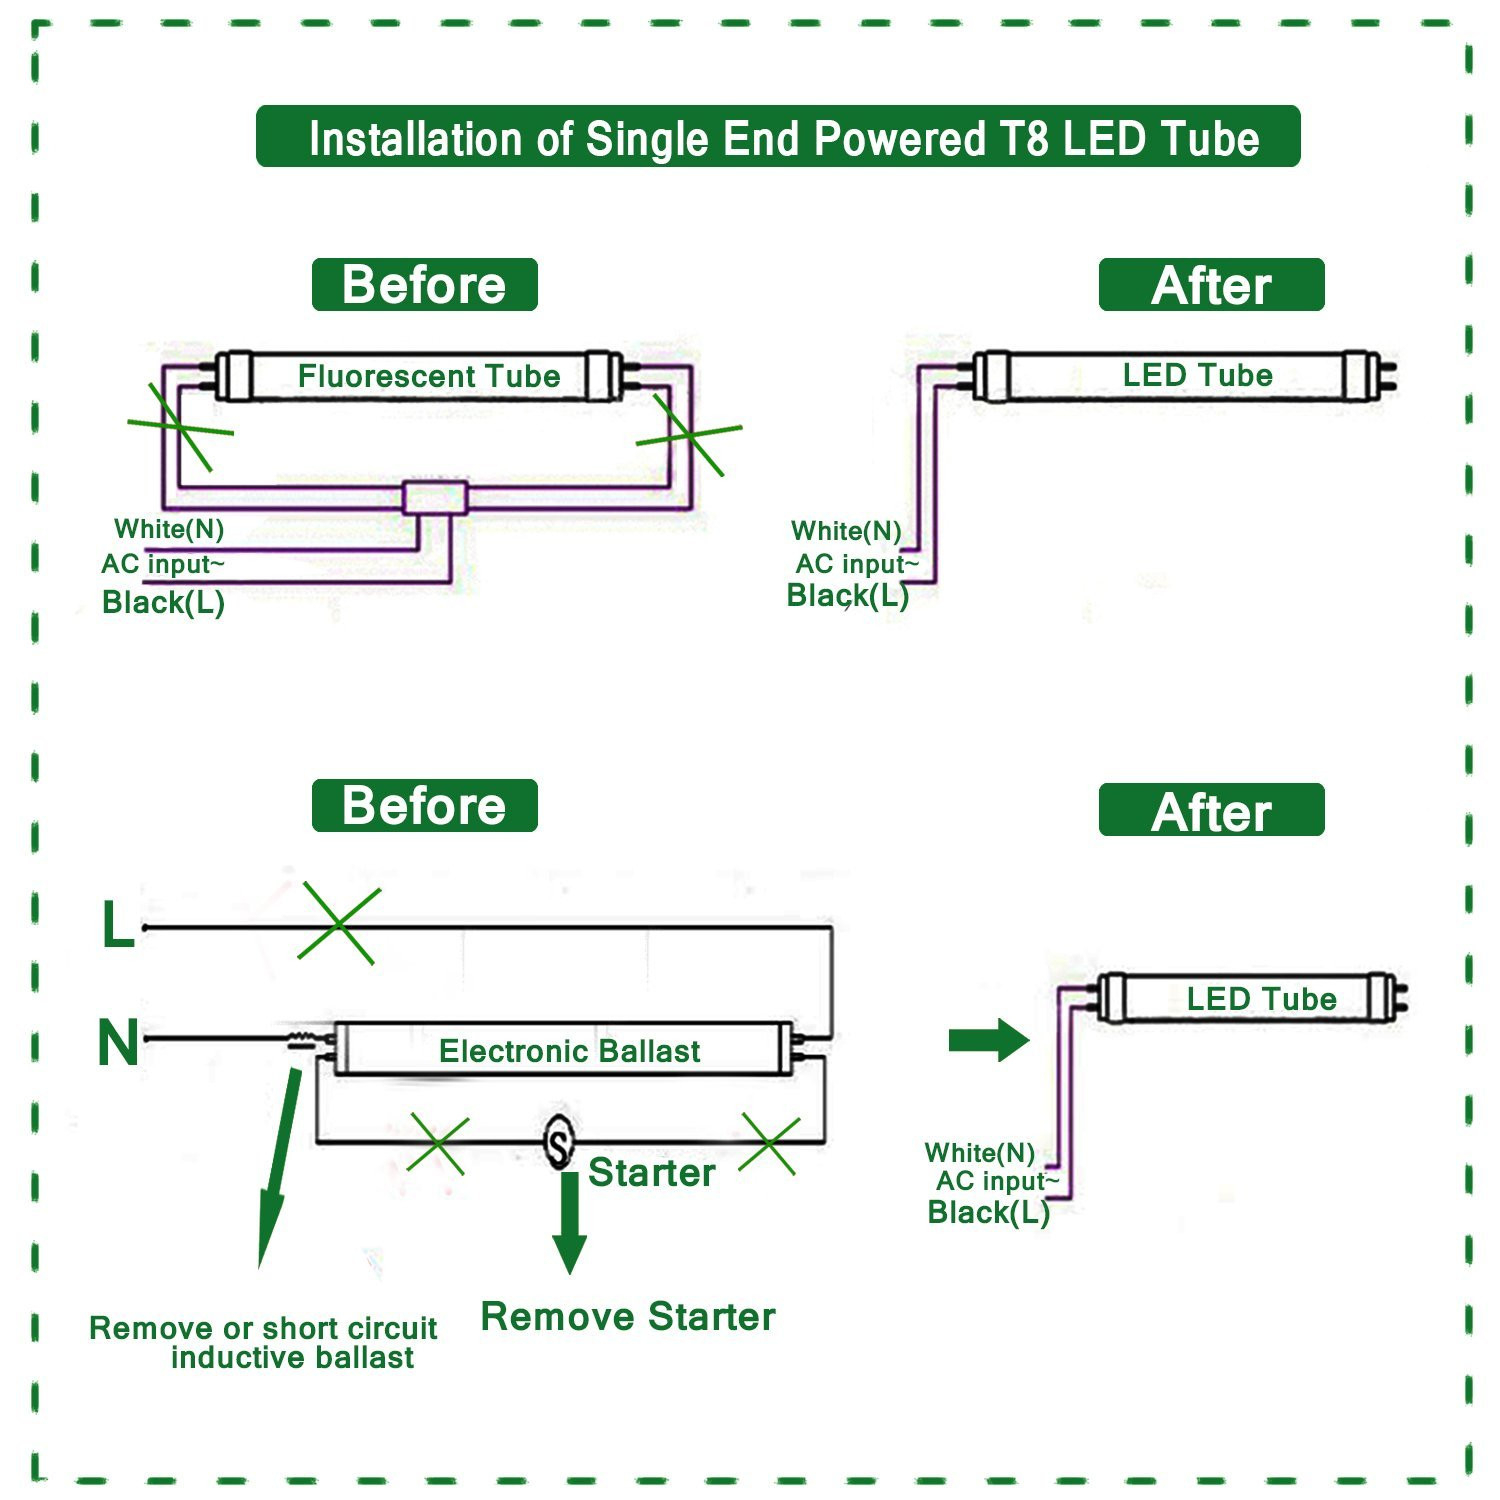 wiring diagram for led tube lights Download-t8 led tube wiring diagram mihella me rh mihella me 18-s